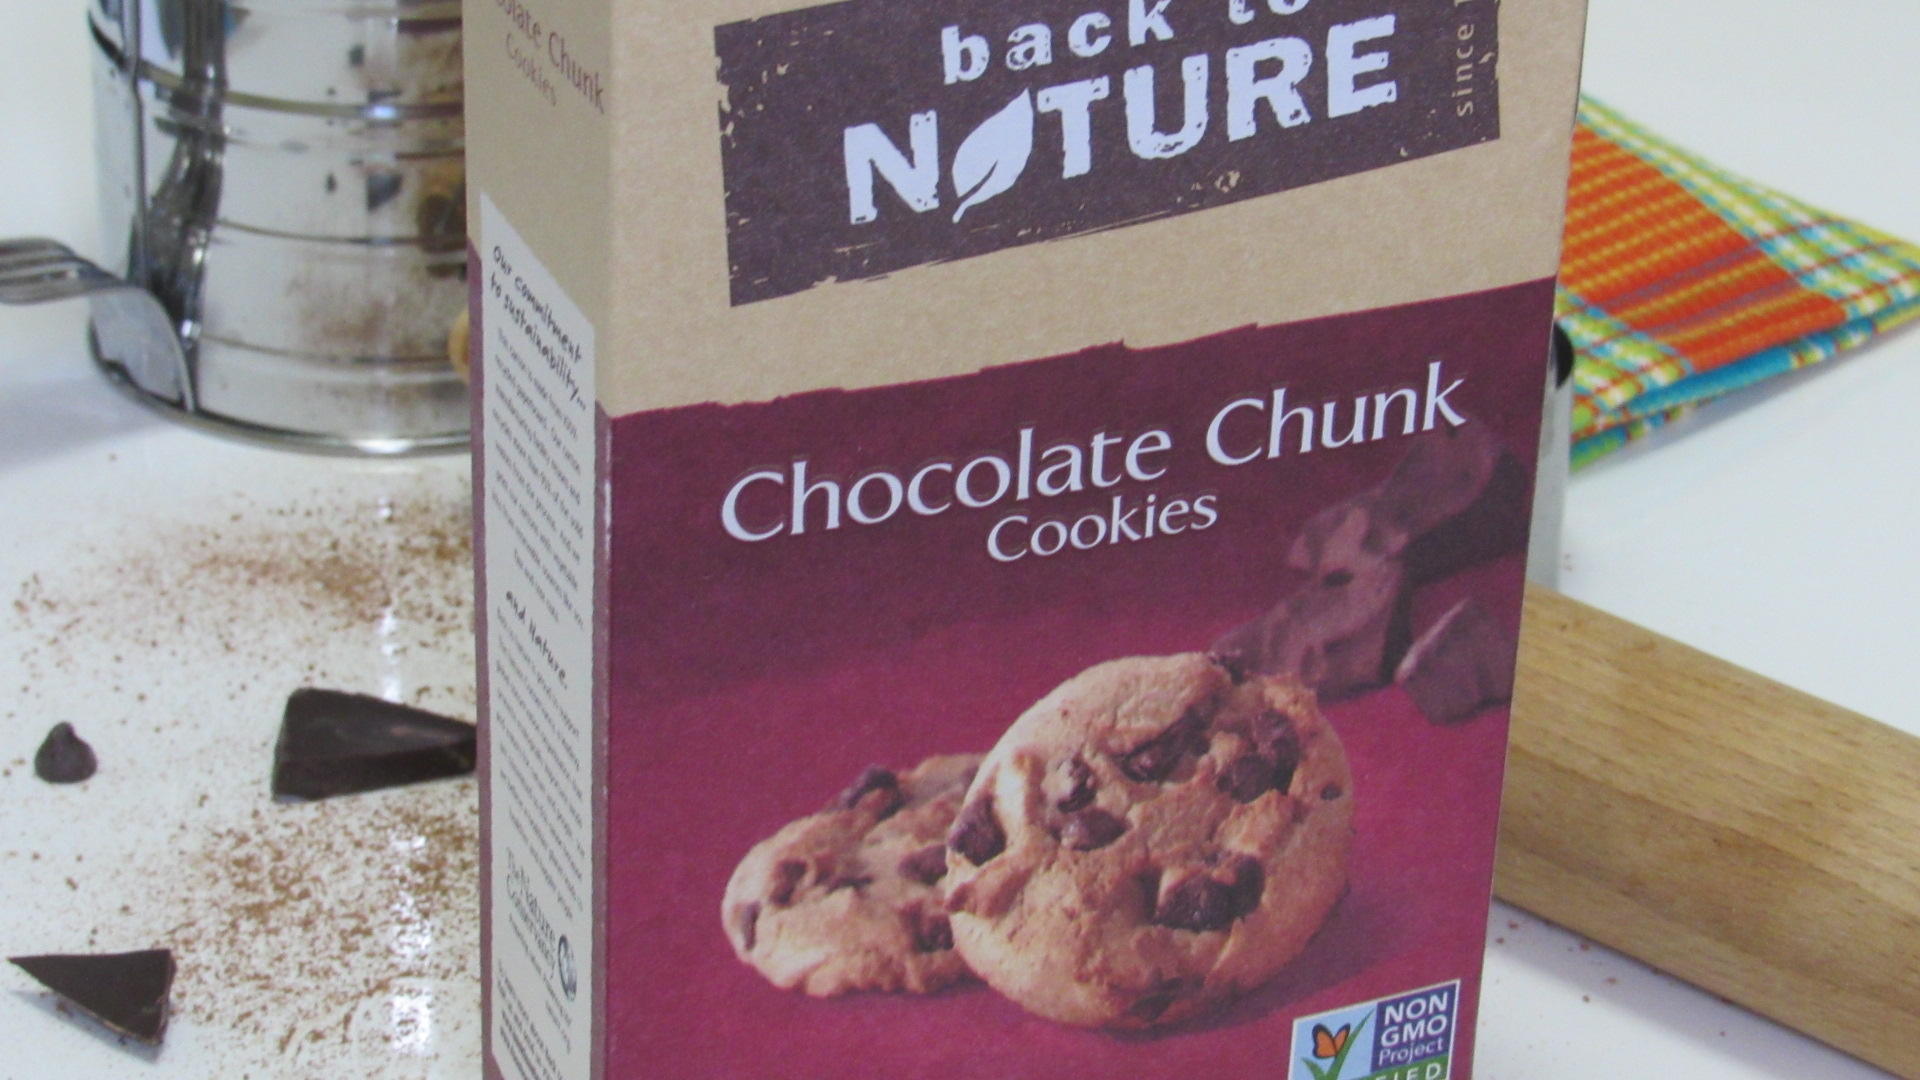 Perfect after school snack! Back To Nature Chocolate Chunk Cookies. #momsmeet #glutenfree #ad #cookies #organic